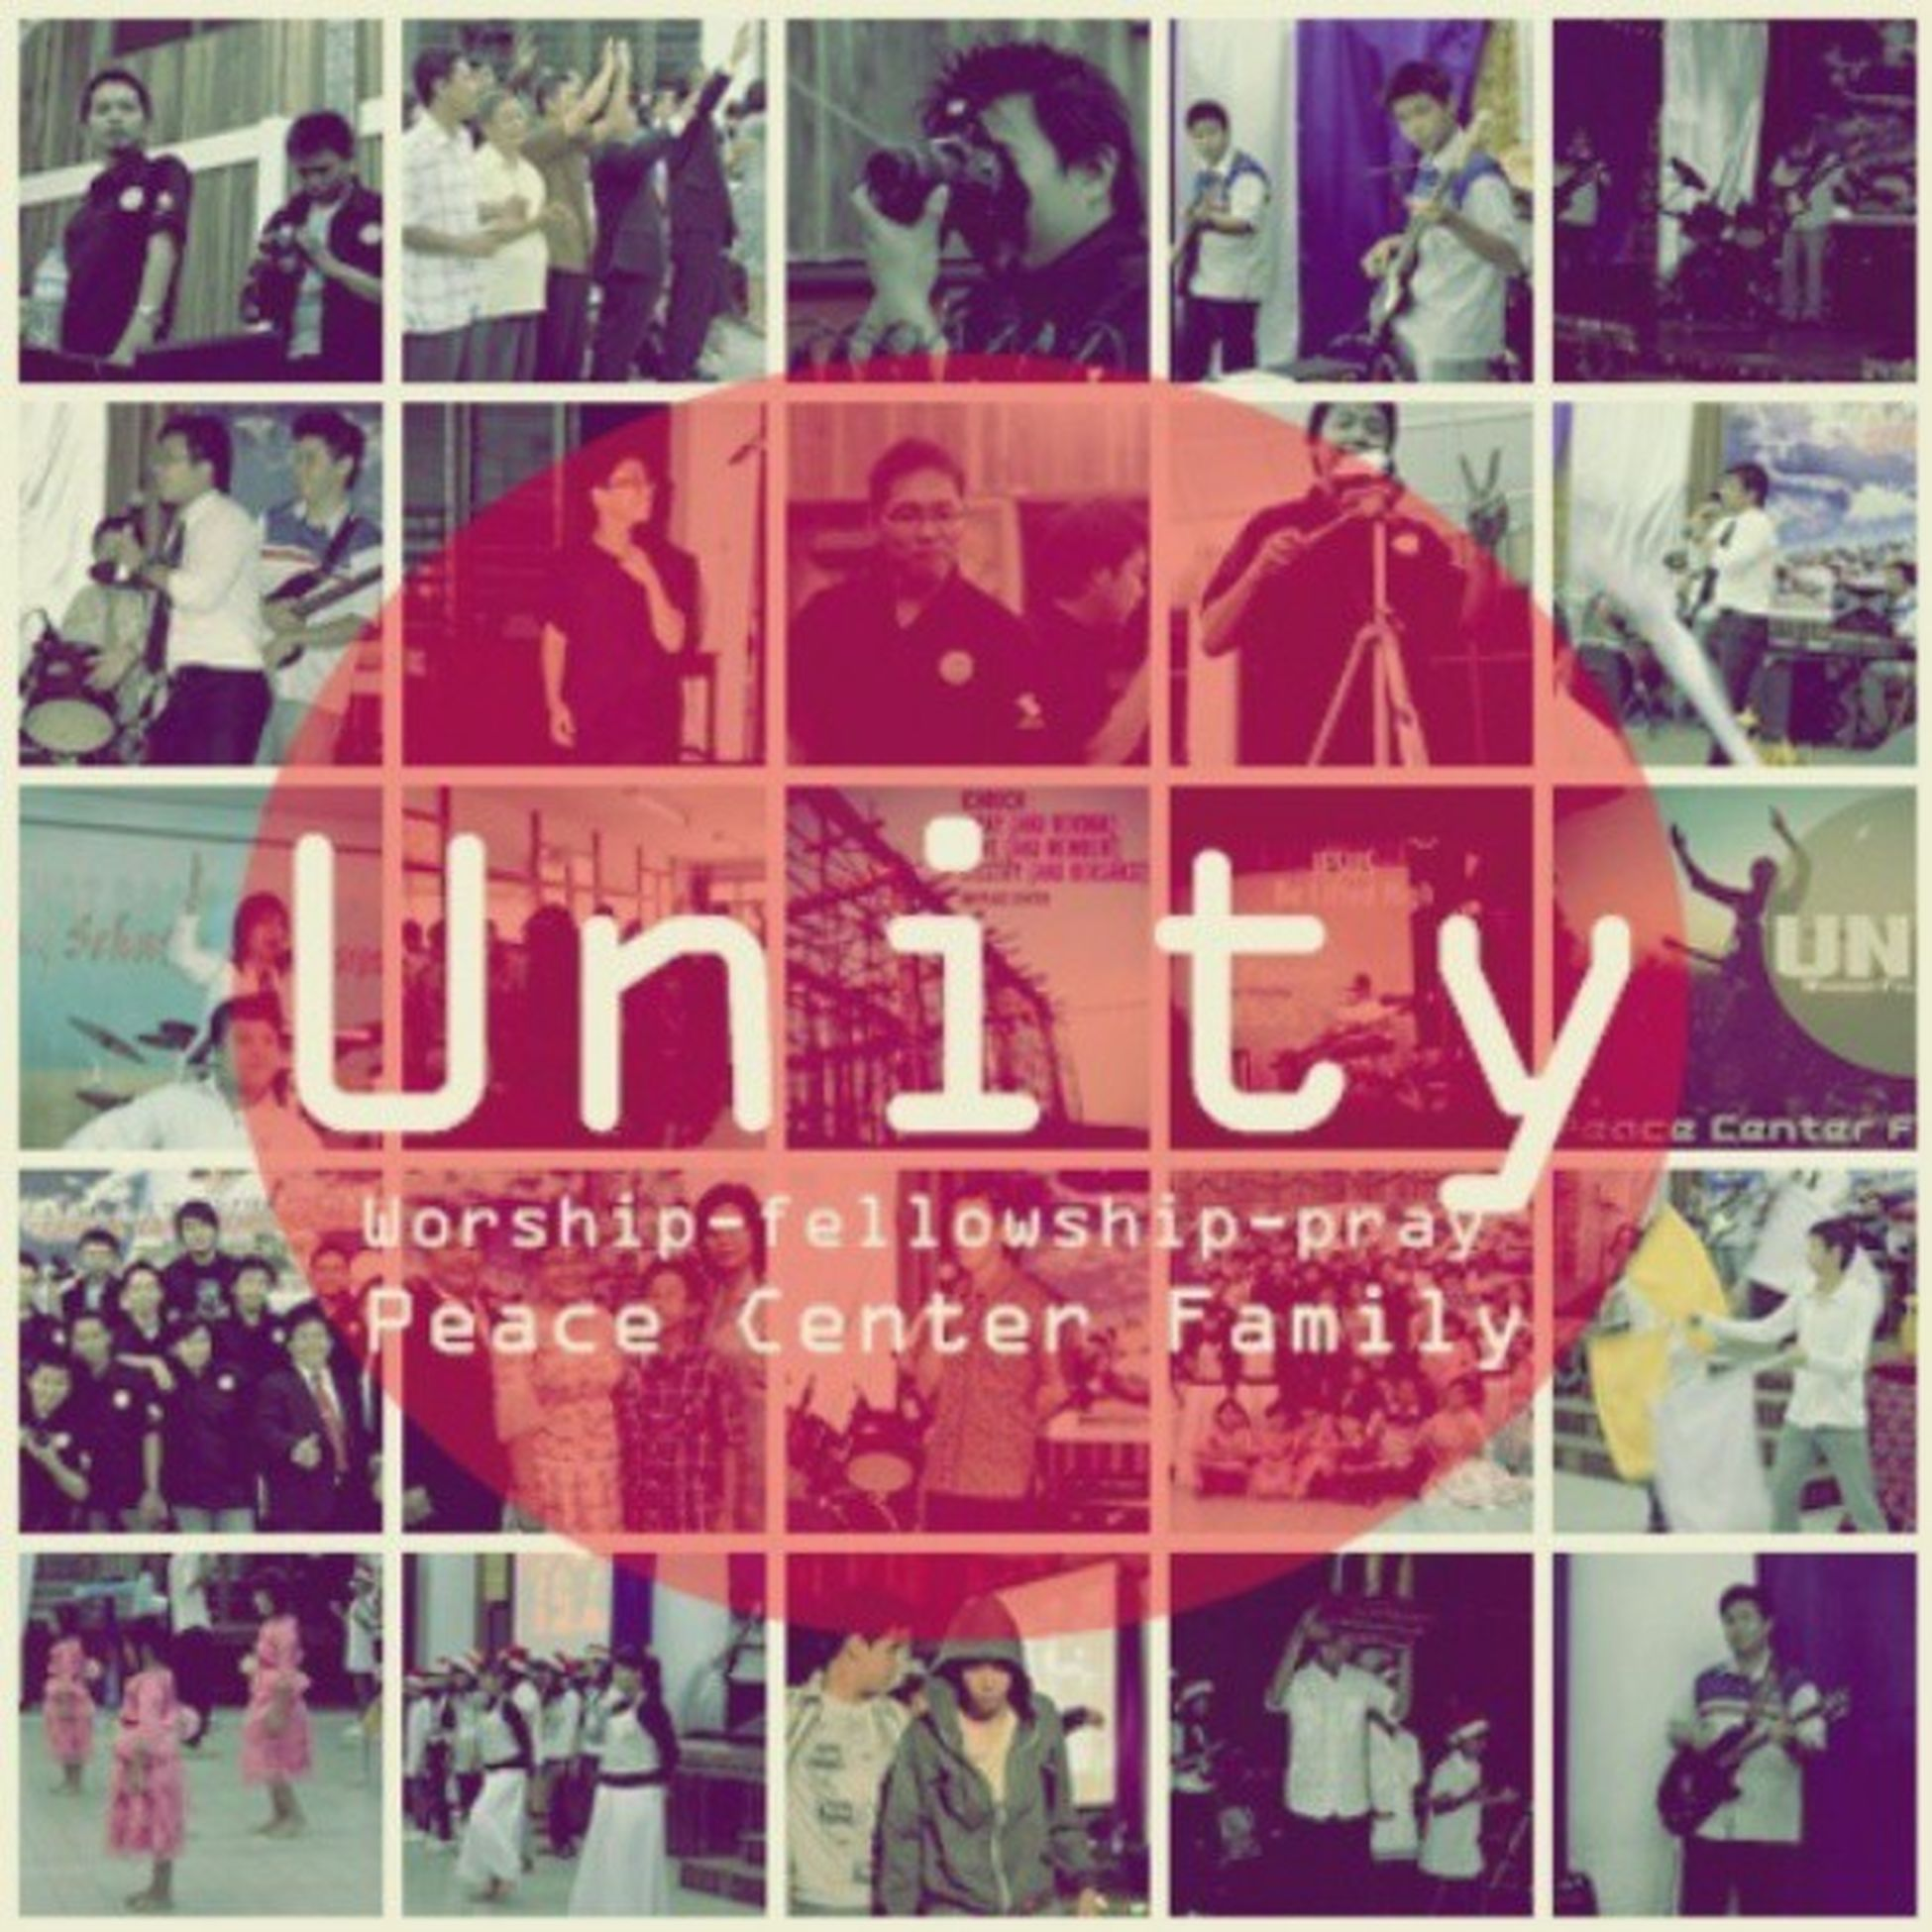 Unity in worship, fellowship, and pray.. we are Peace Center Family.. Gbipeacecenter Highimpactchruch Gbipc Unity unityinchrist